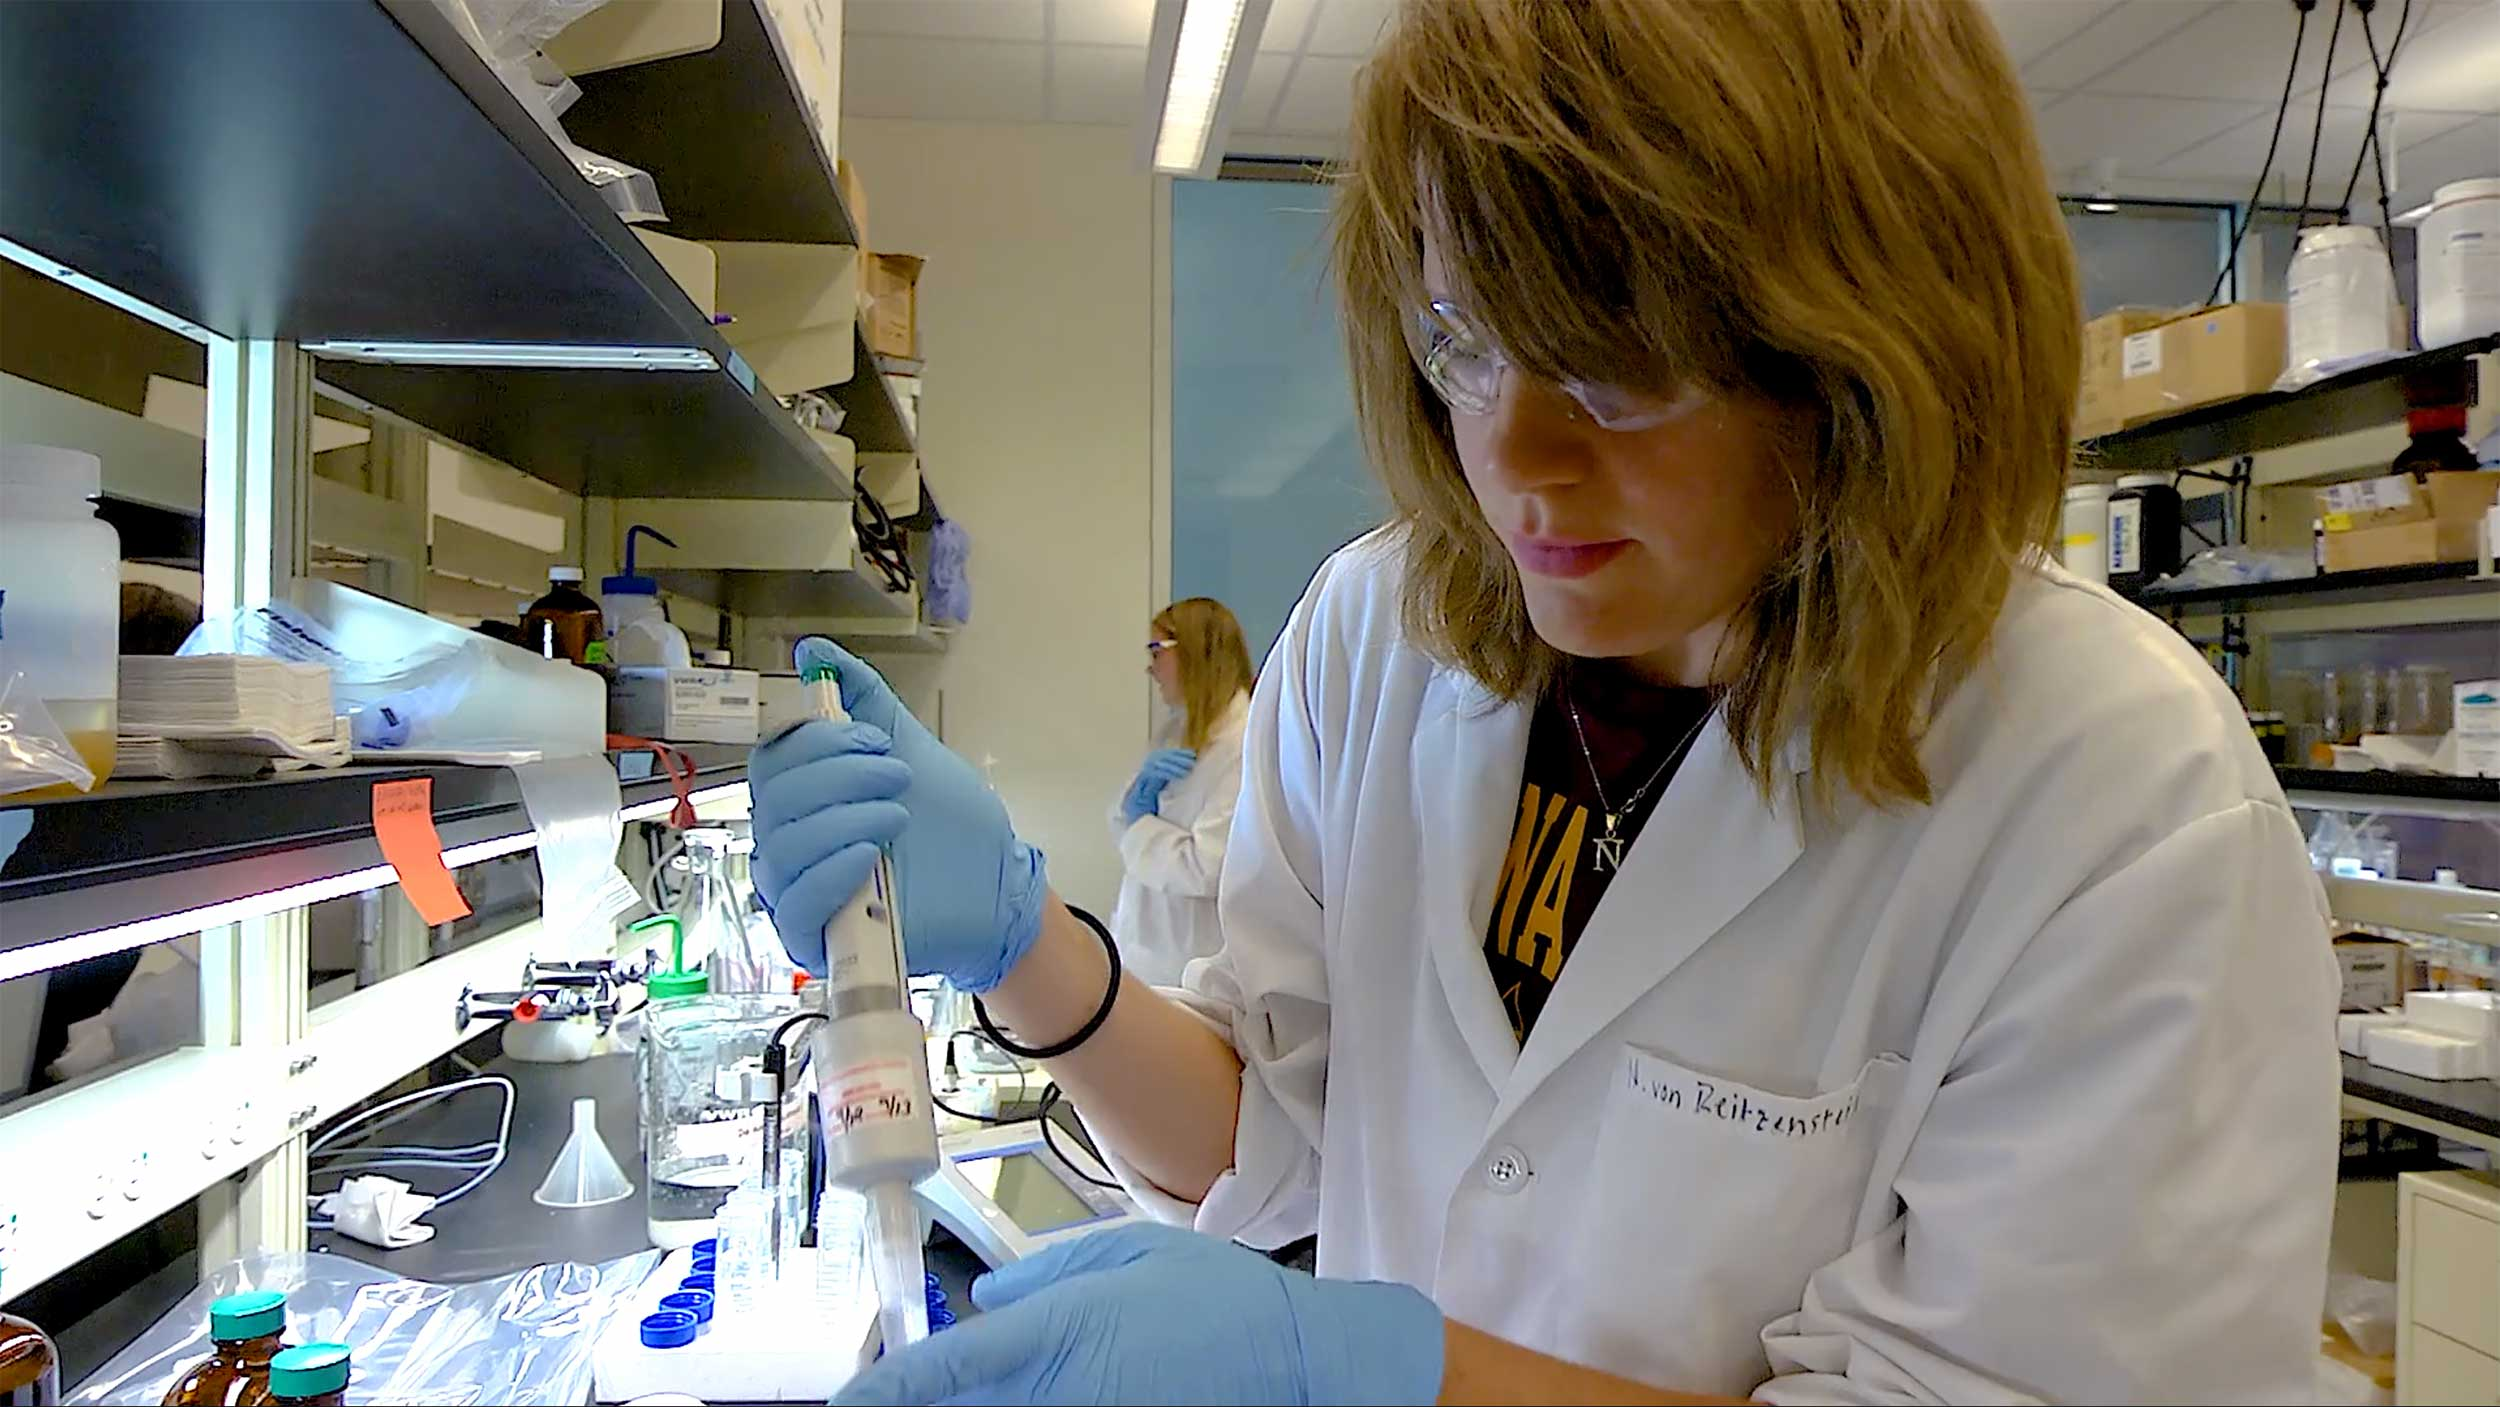 An environmental engineering student is working in a research lab